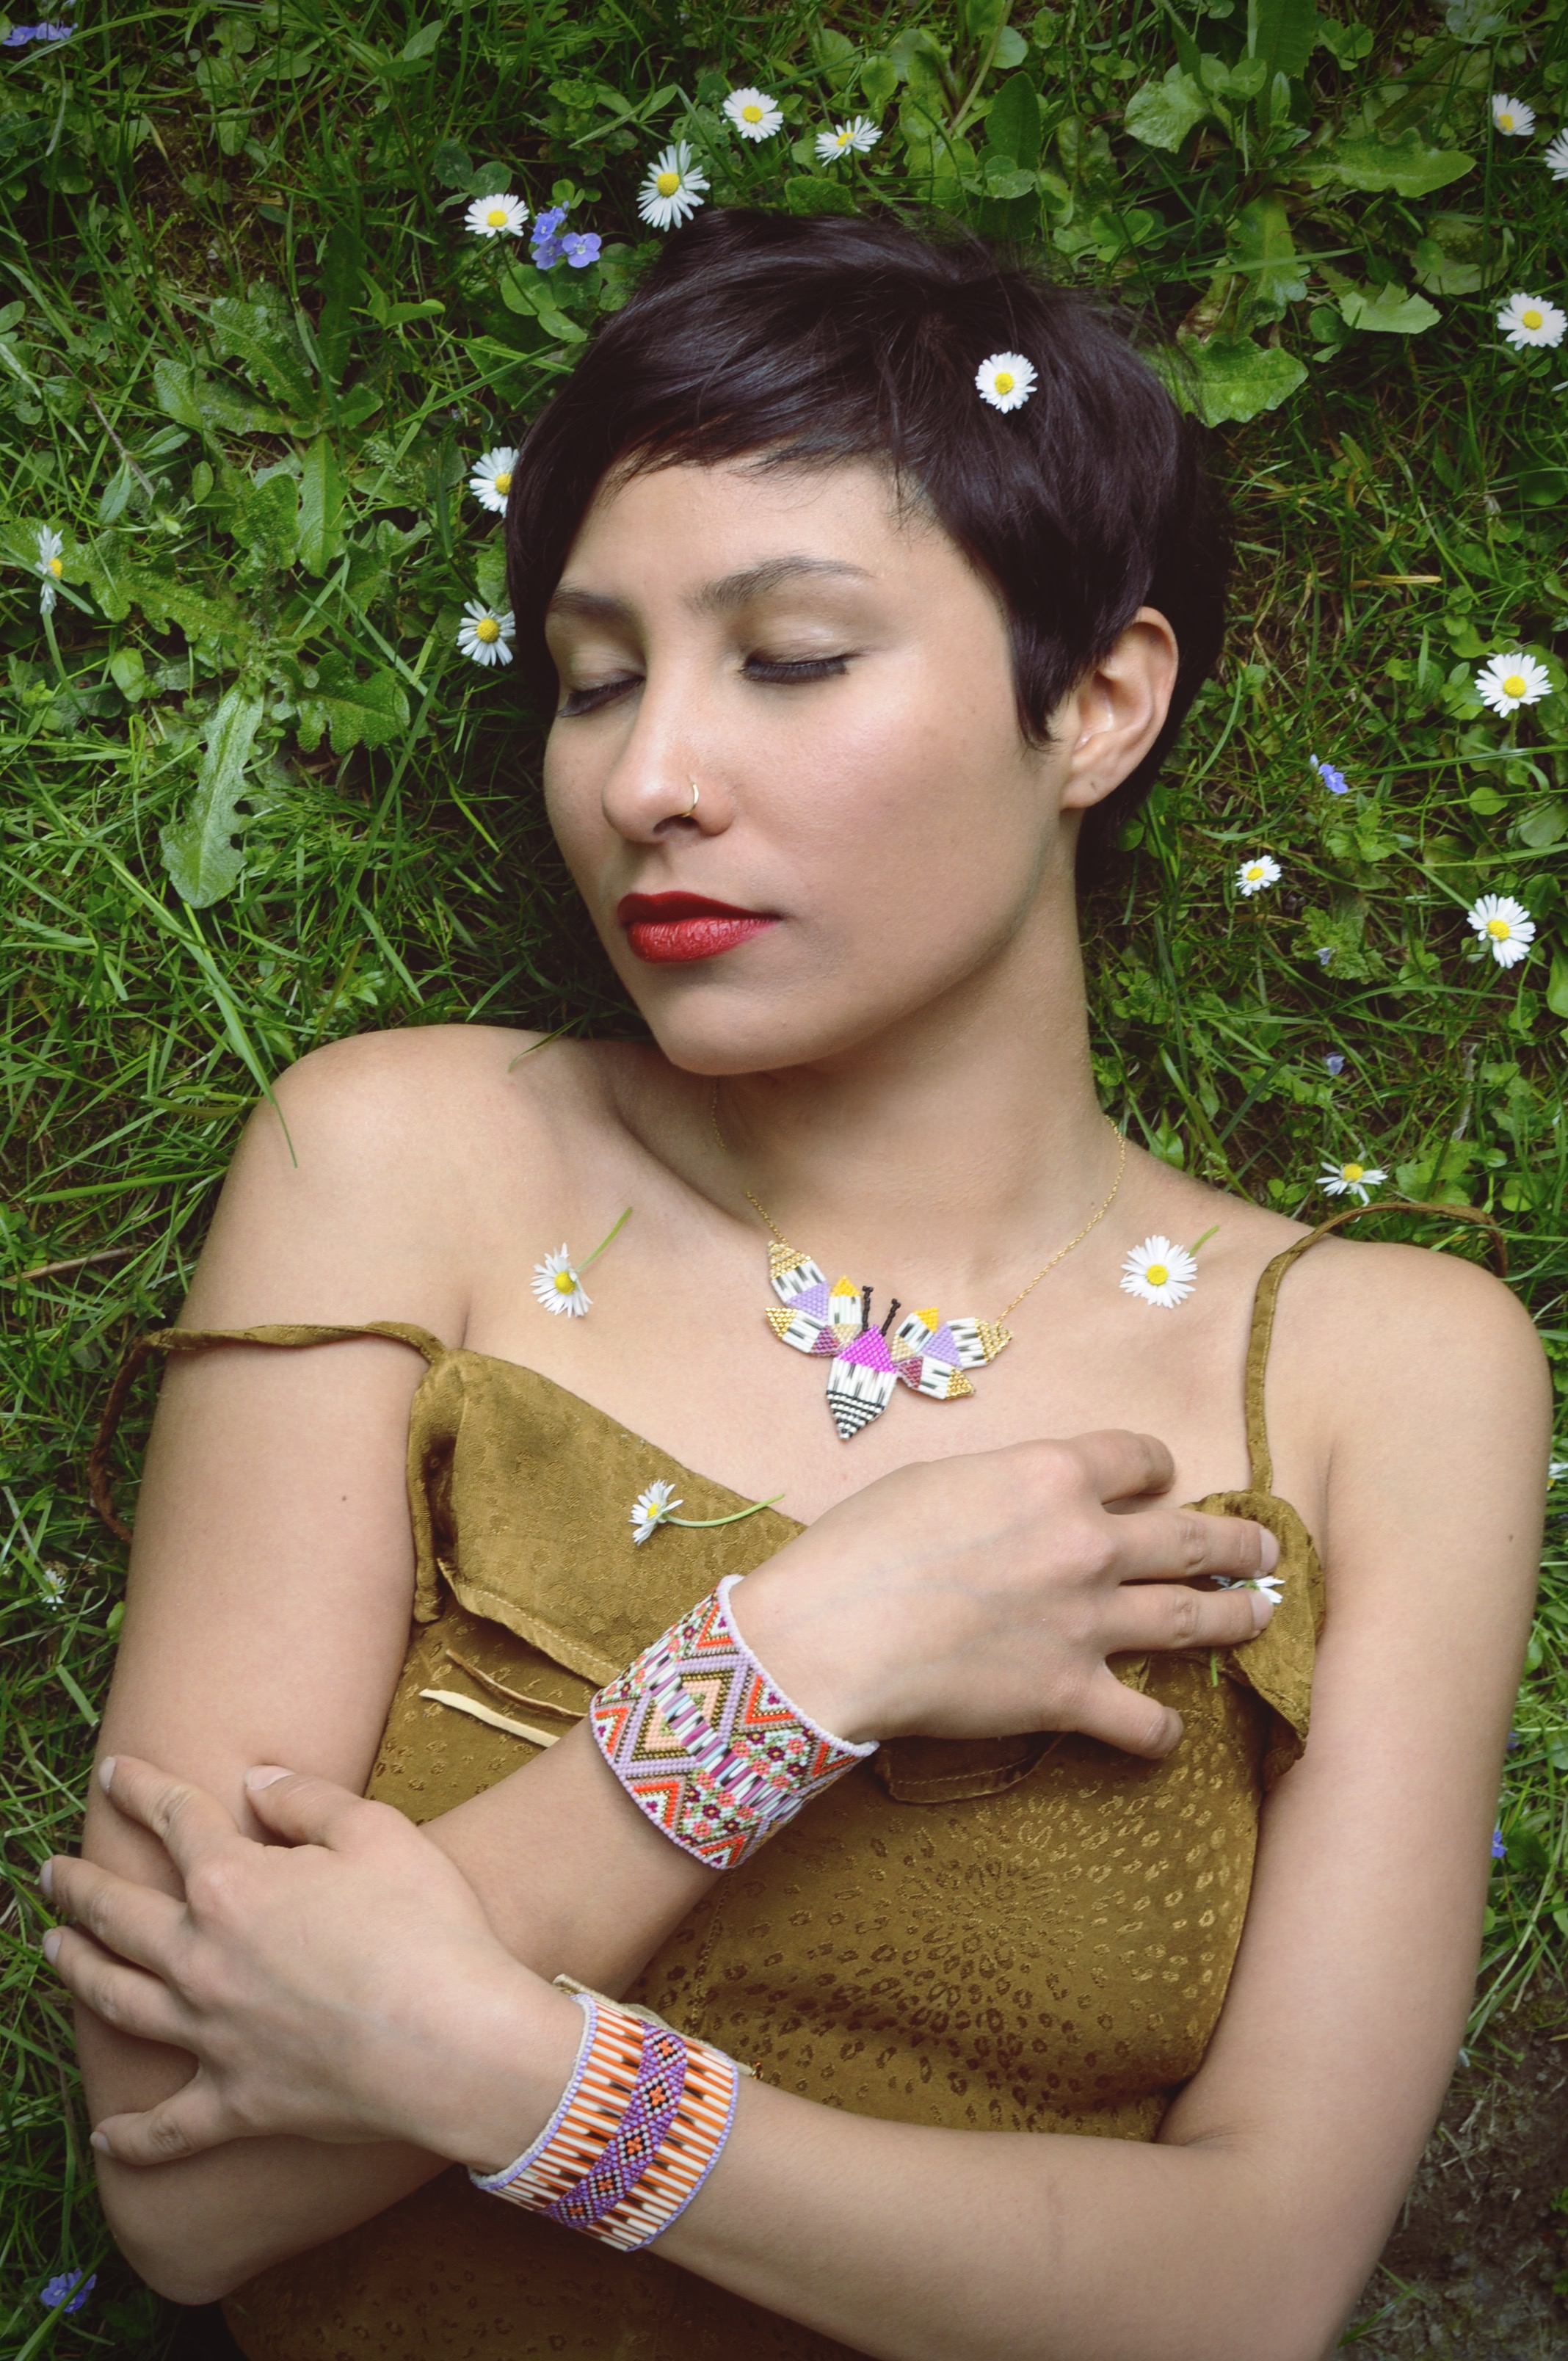 Jewellery: BumbleBee Necklace, Beaded & Quill Cuffs